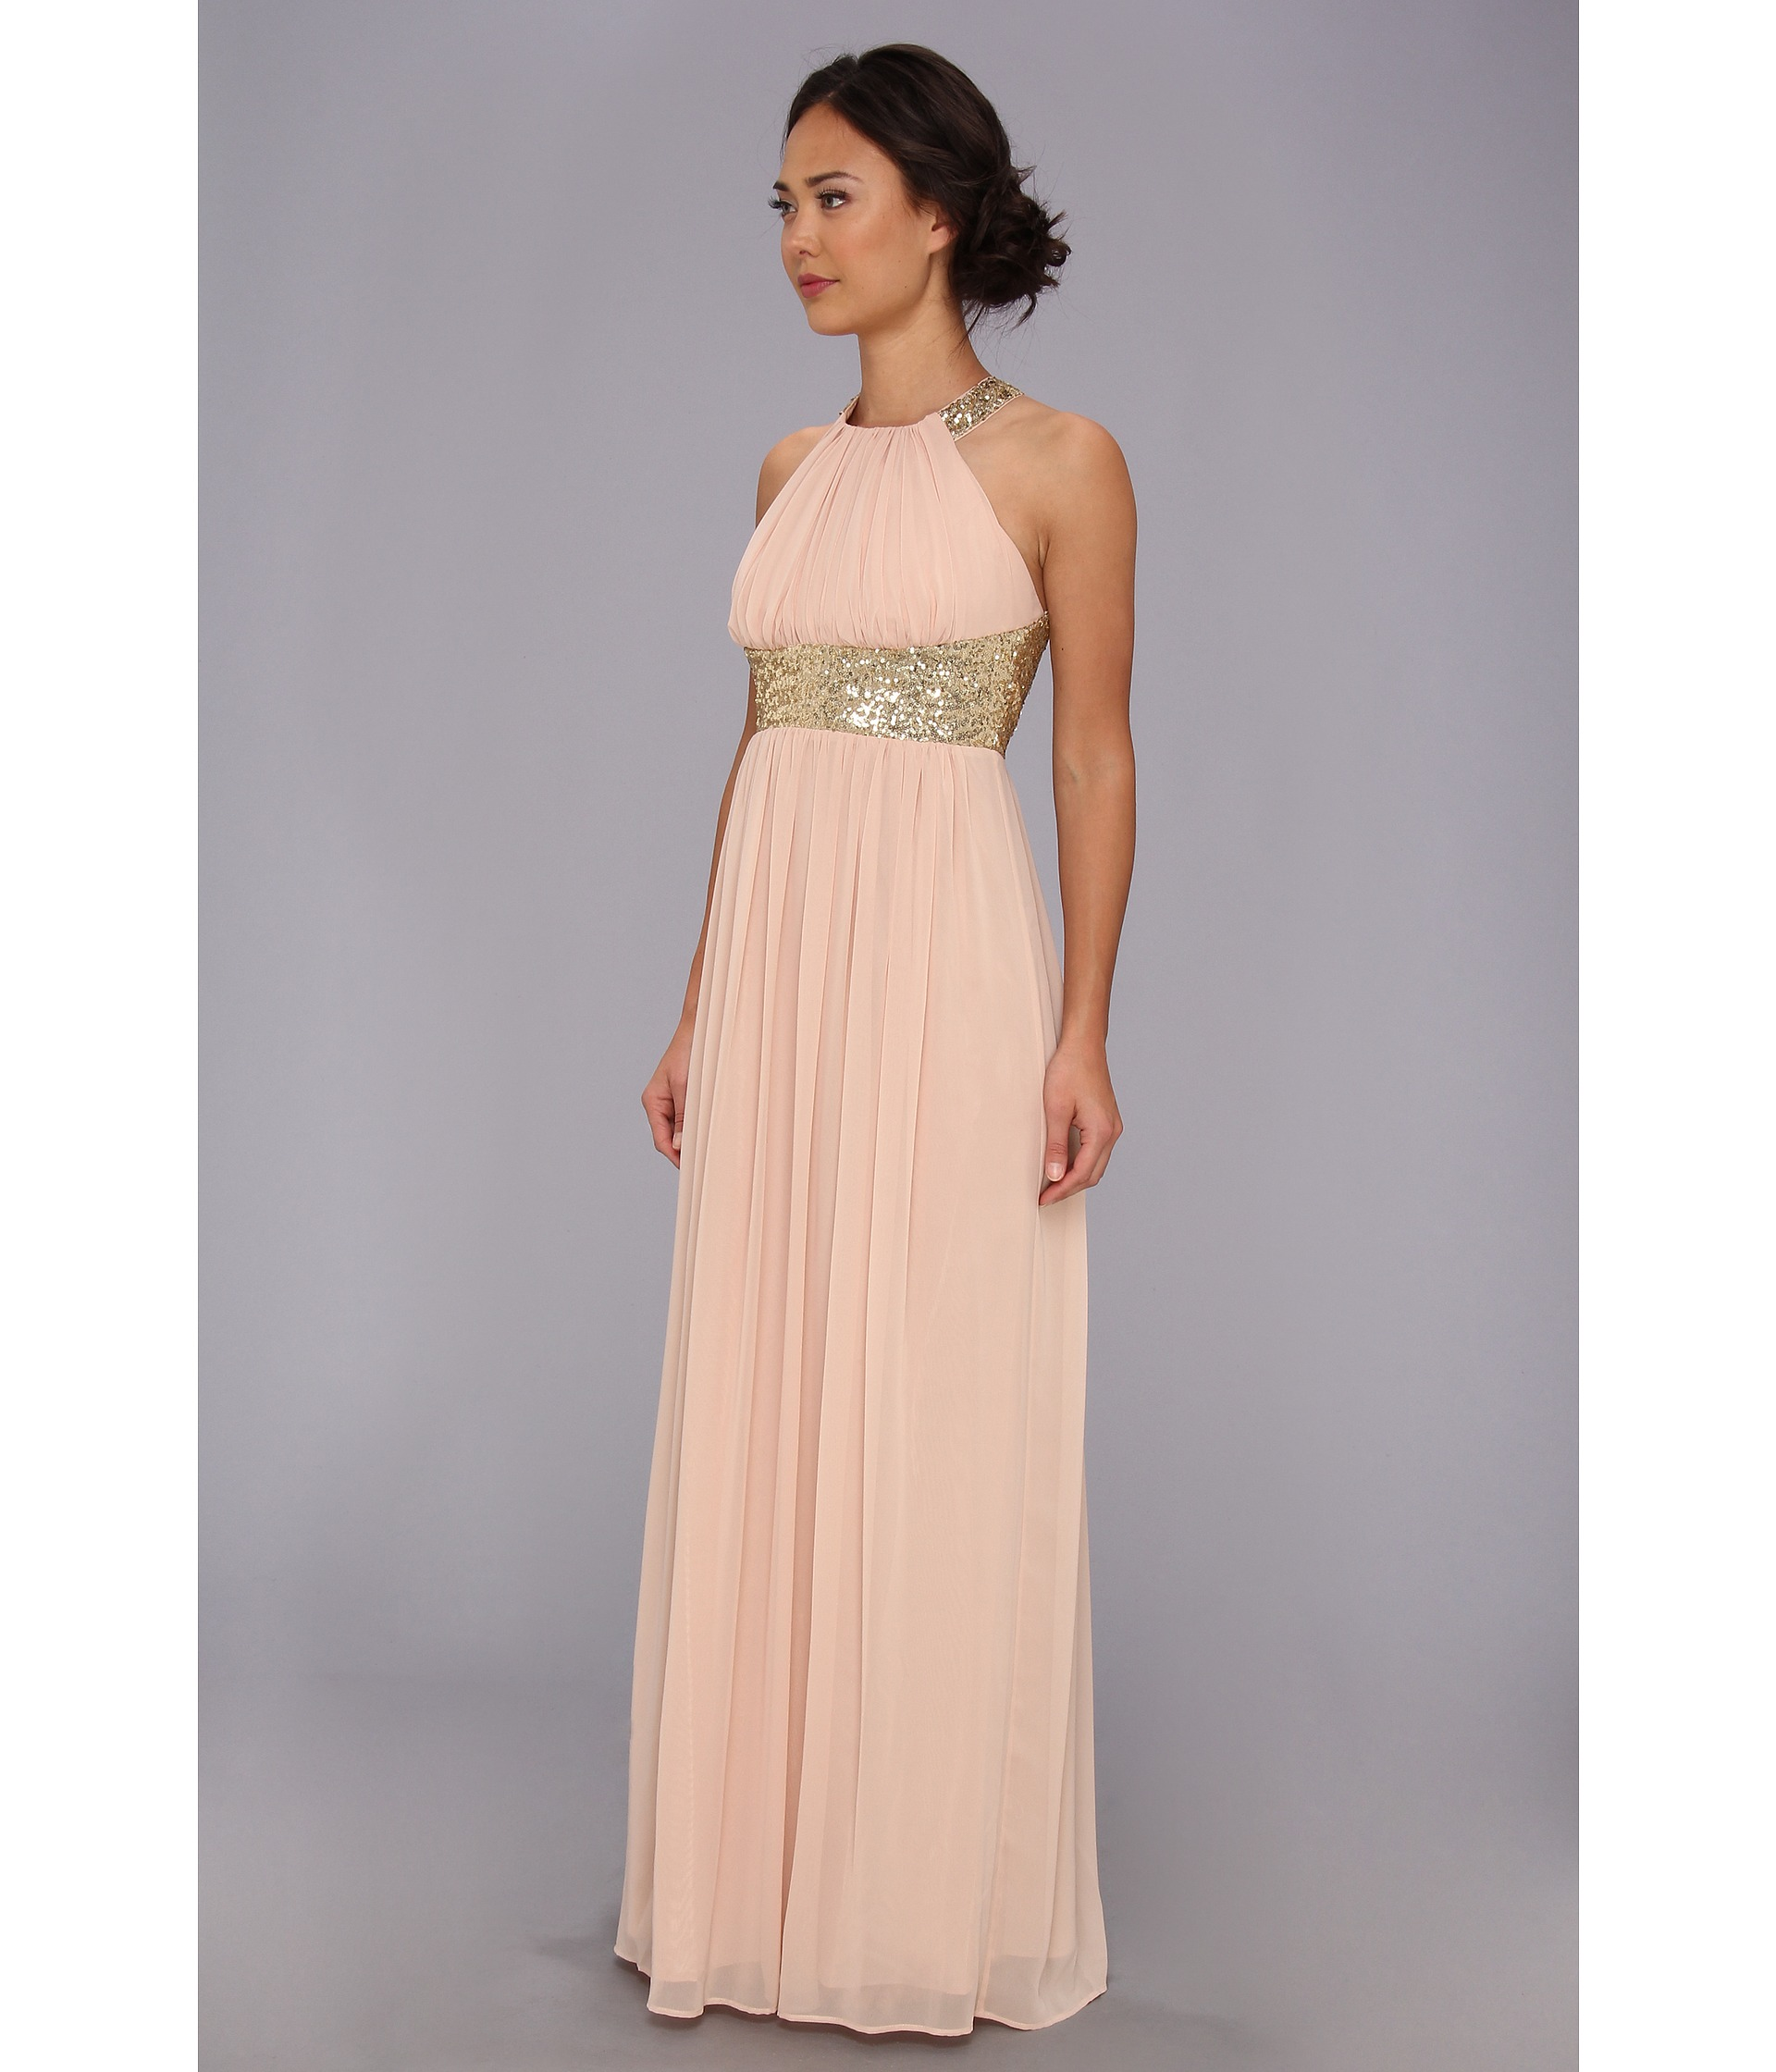 Calvin Klein Wedding Gowns: Calvin Klein Halter Gown W Seqins Dress Nude Gold